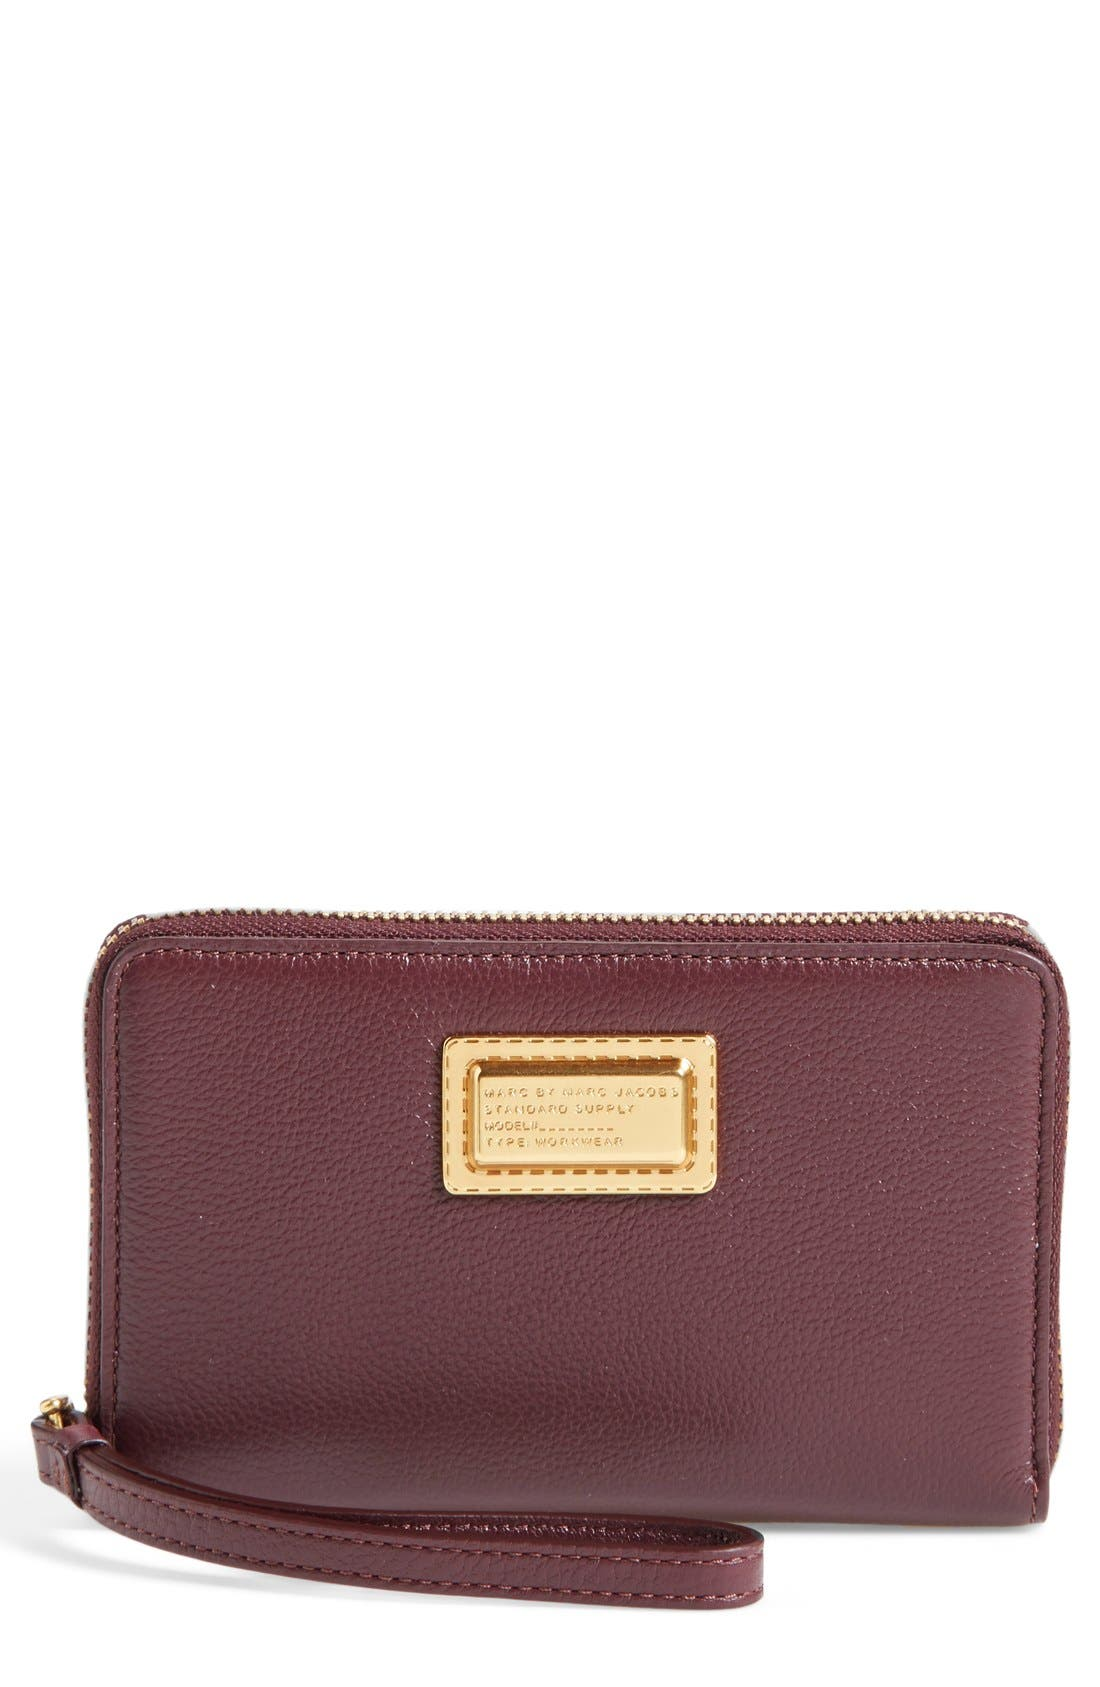 Alternate Image 1 Selected - MARC BY MARC JACOBS 'Take Your Marc - Wingman' Smartphone Wristlet